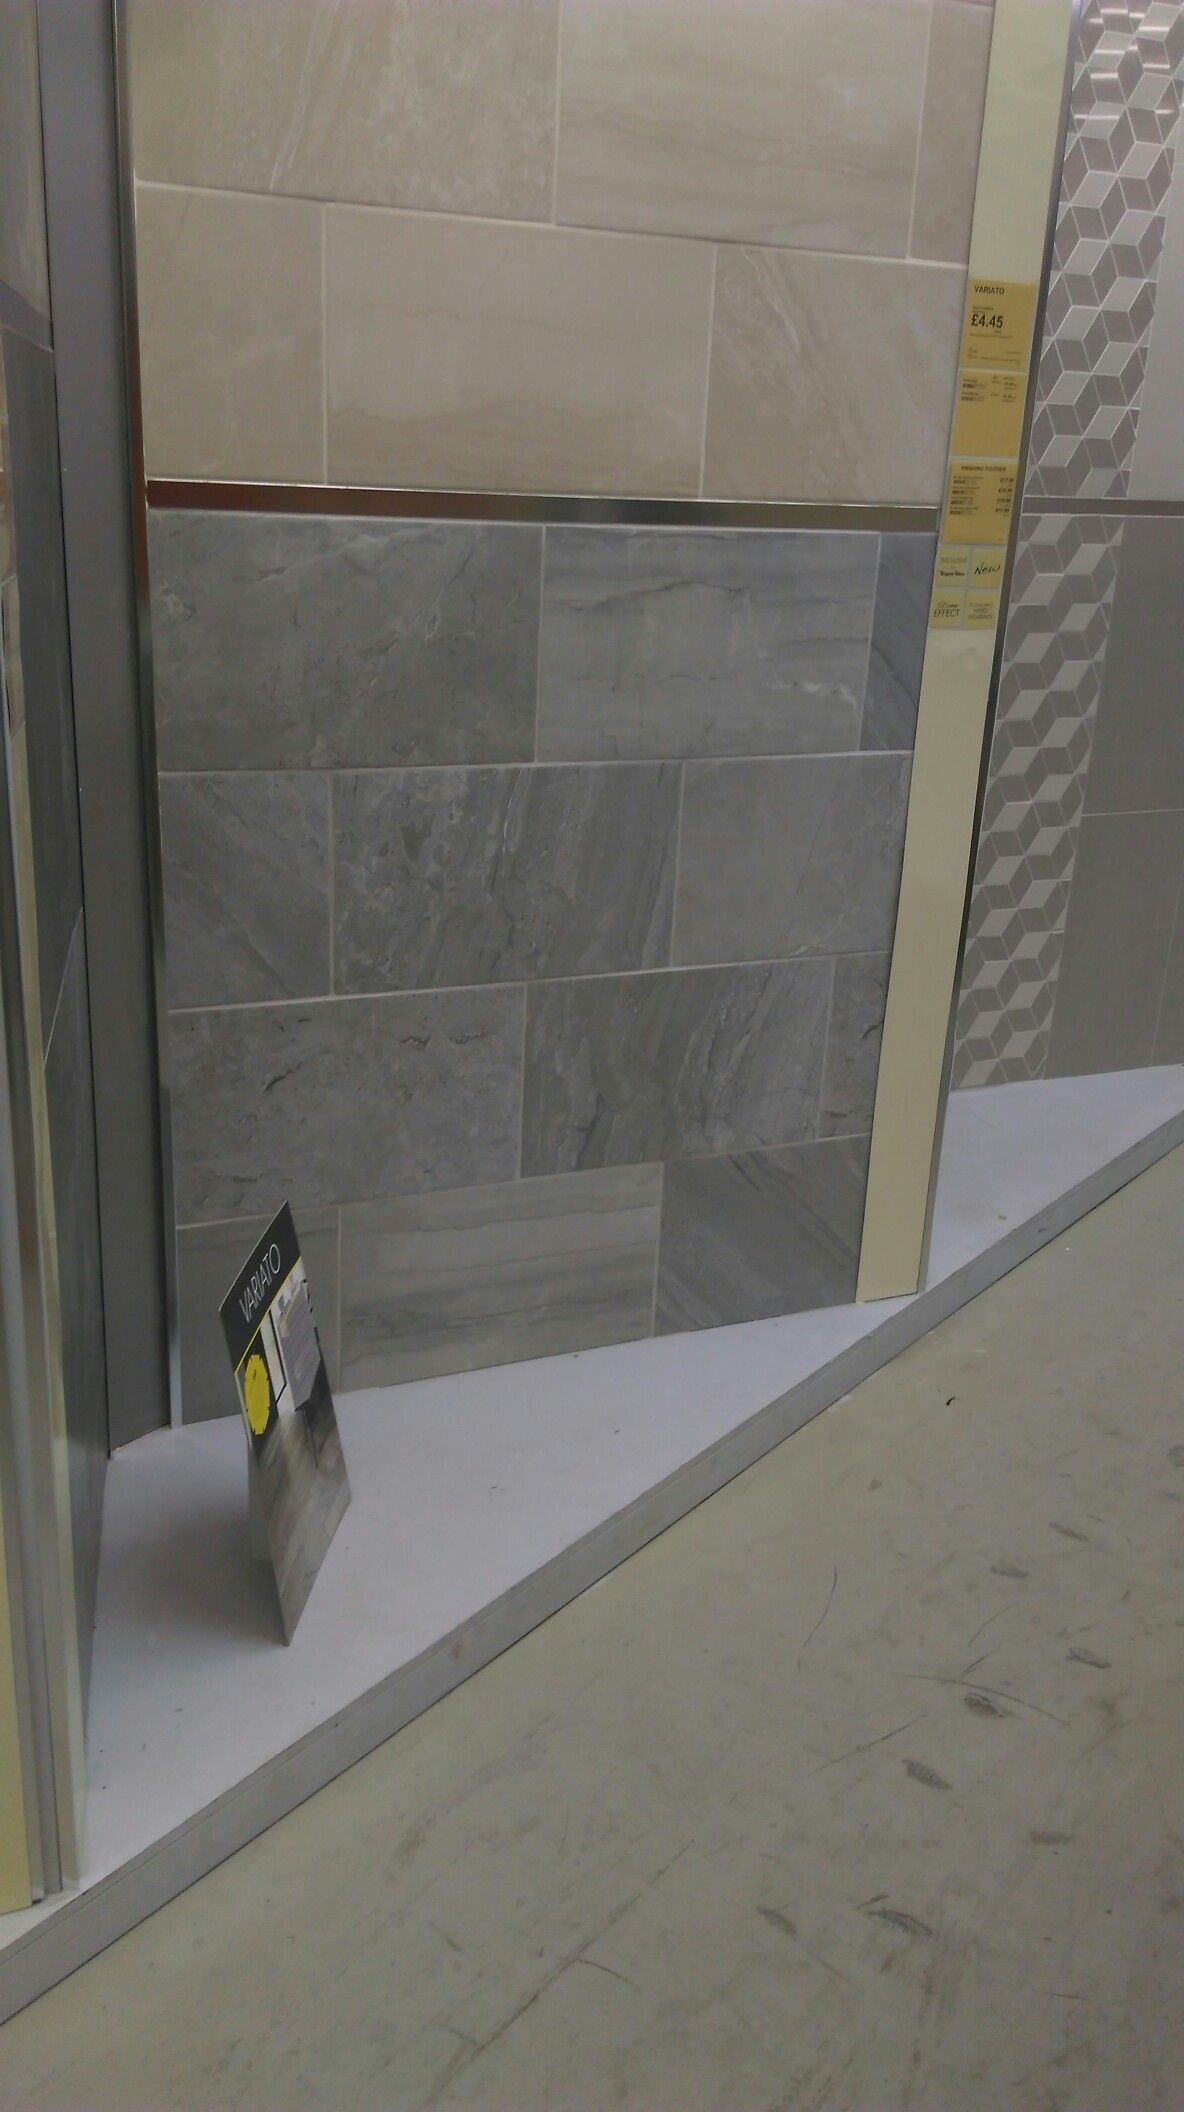 Pin on Tiling probably not